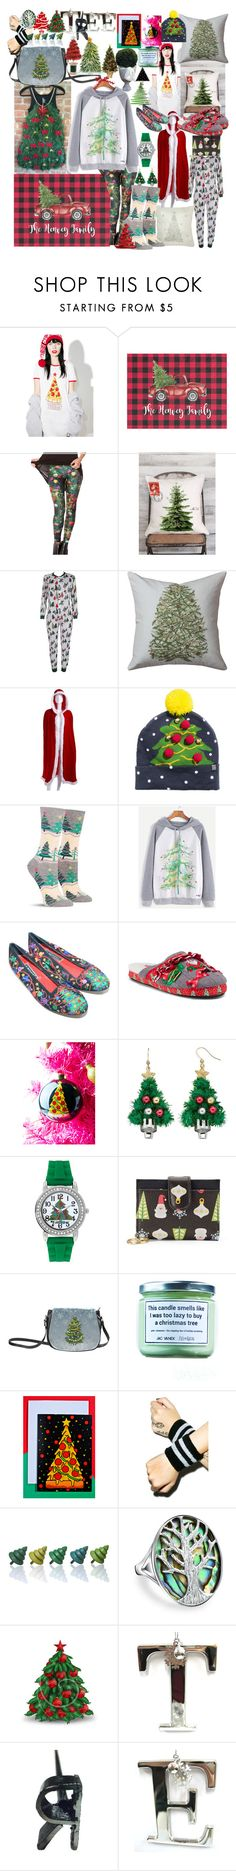 """Must love trees!!"" by lerp ❤ liked on Polyvore featuring MINKPINK, Home Decorators Collection, Sourpuss, Mixit, Buxton, Jac Vanek, Dogpile, Areaware and Bling Jewelry"